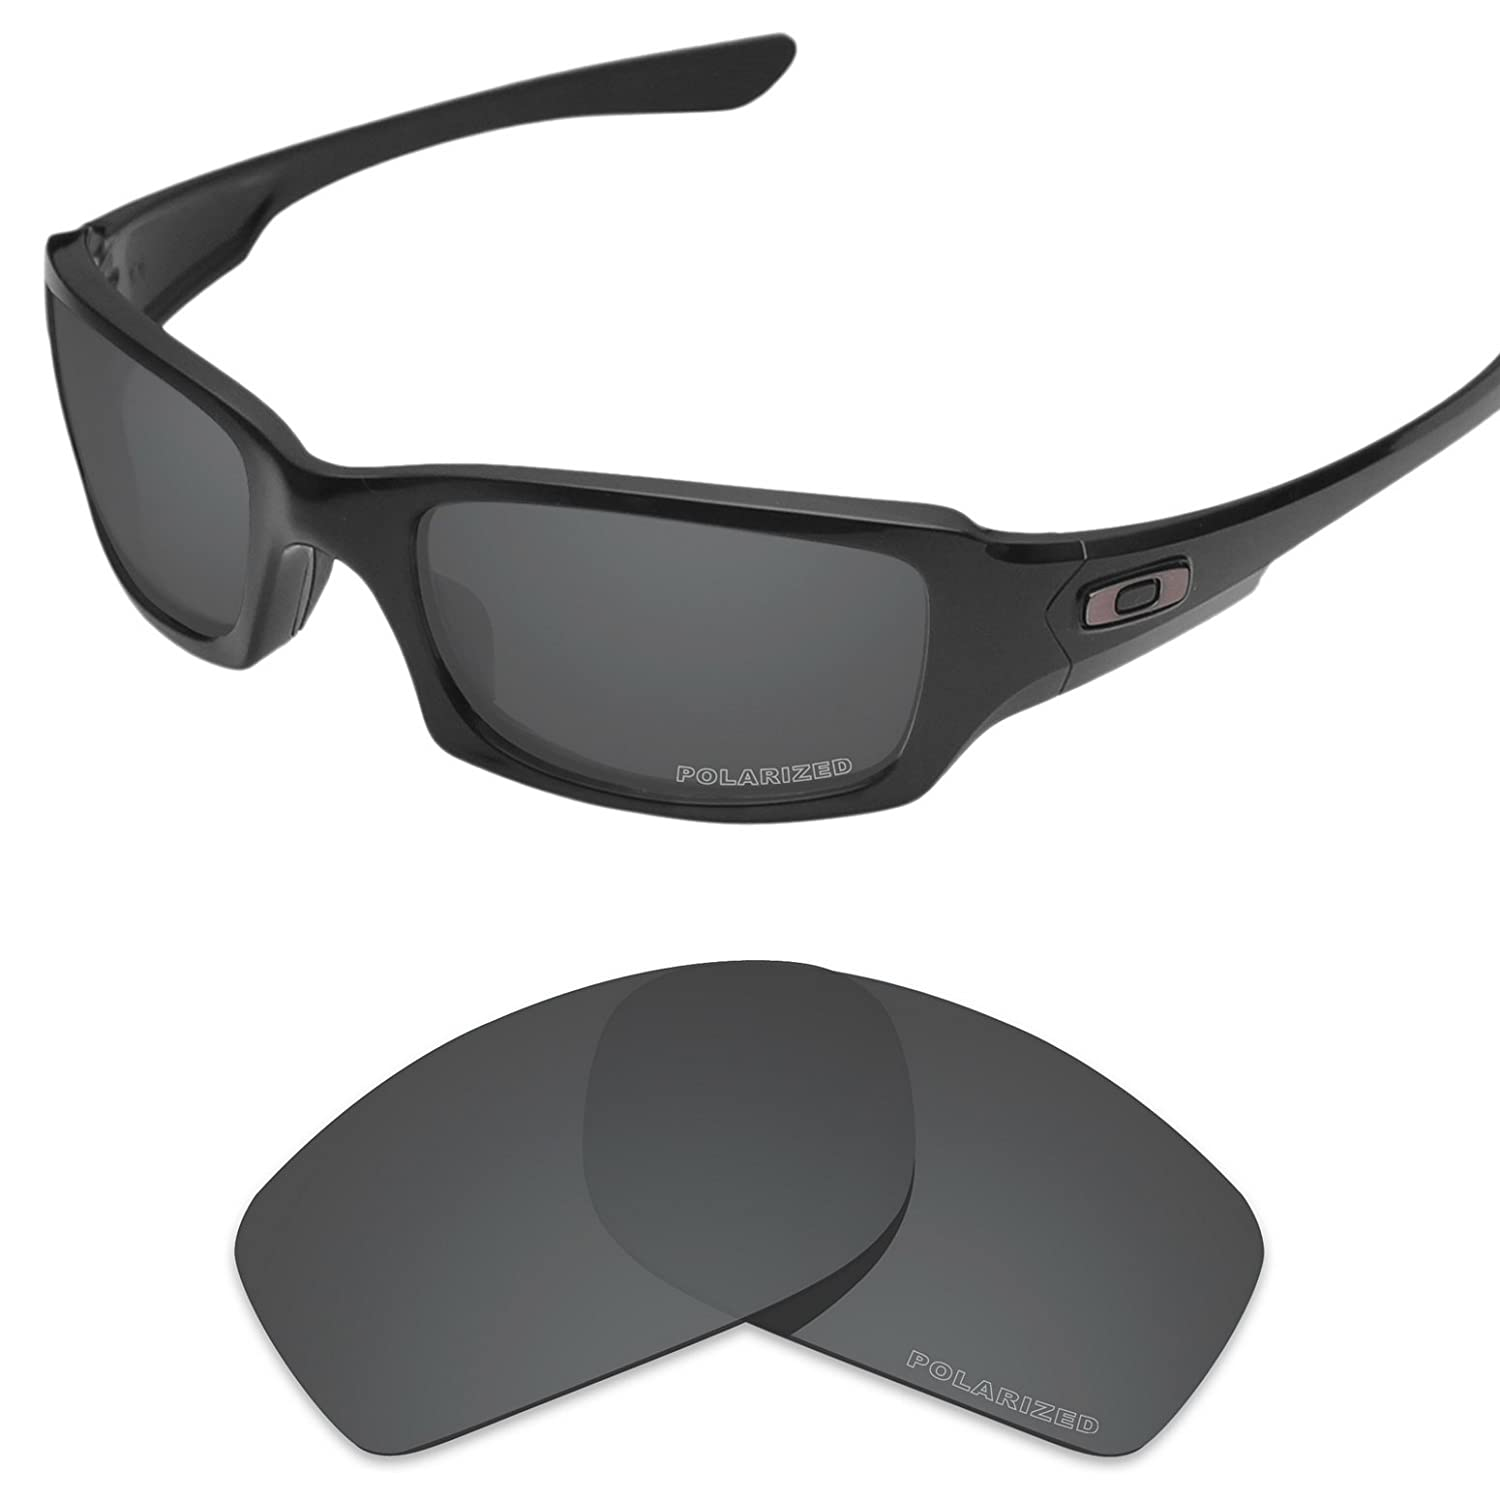 5784643d2c9 Amazon.com  Tintart Performance Lenses Compatible with Oakley Fives Squared  Polarized Etched-Carbon Black  Clothing